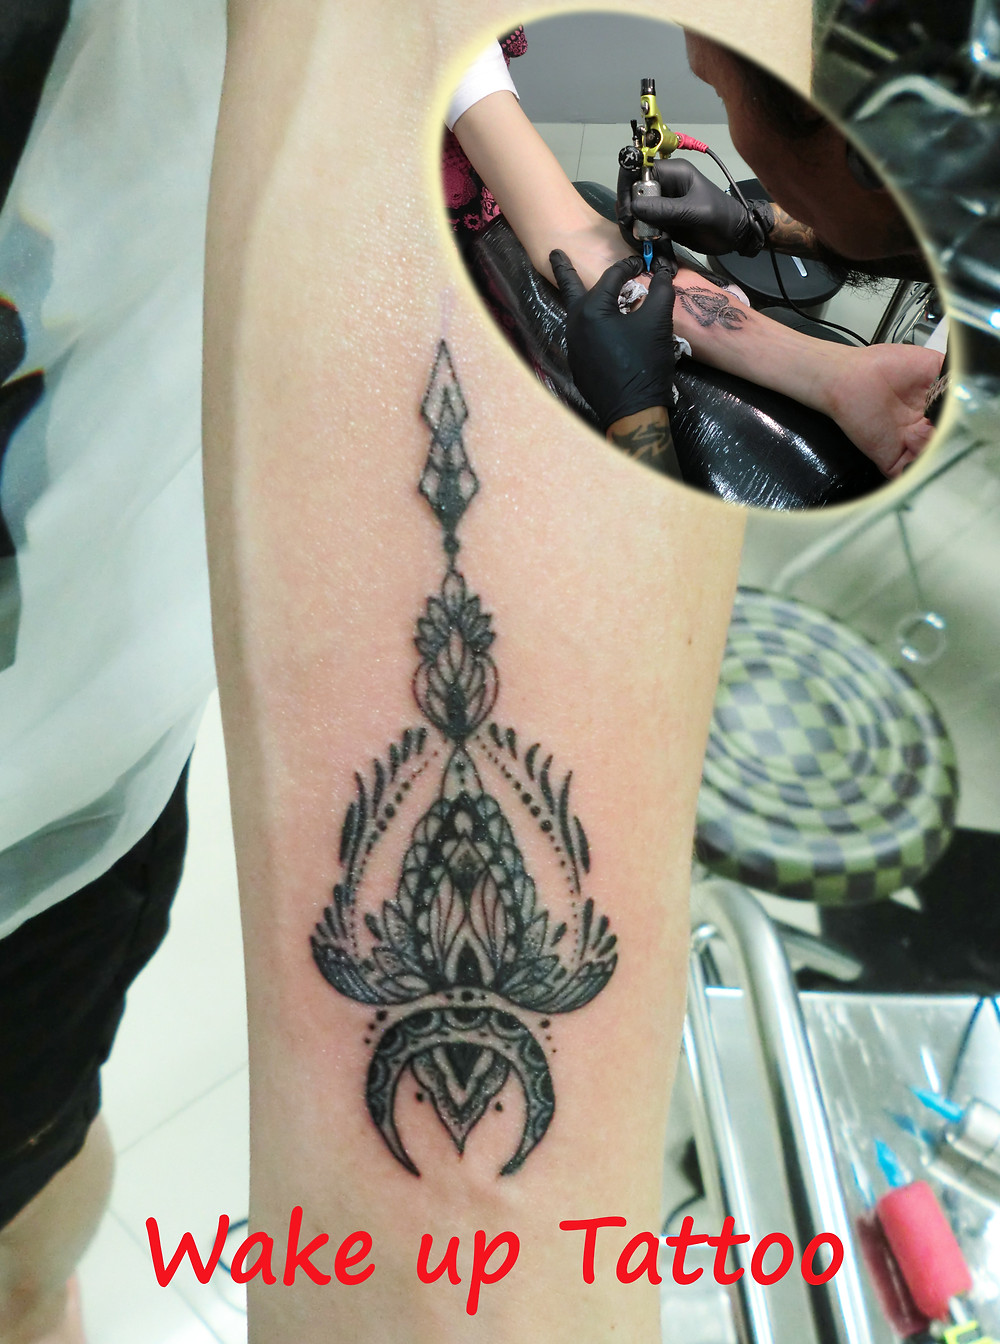 Spear tattoo by Wake up Tattoo Phuket